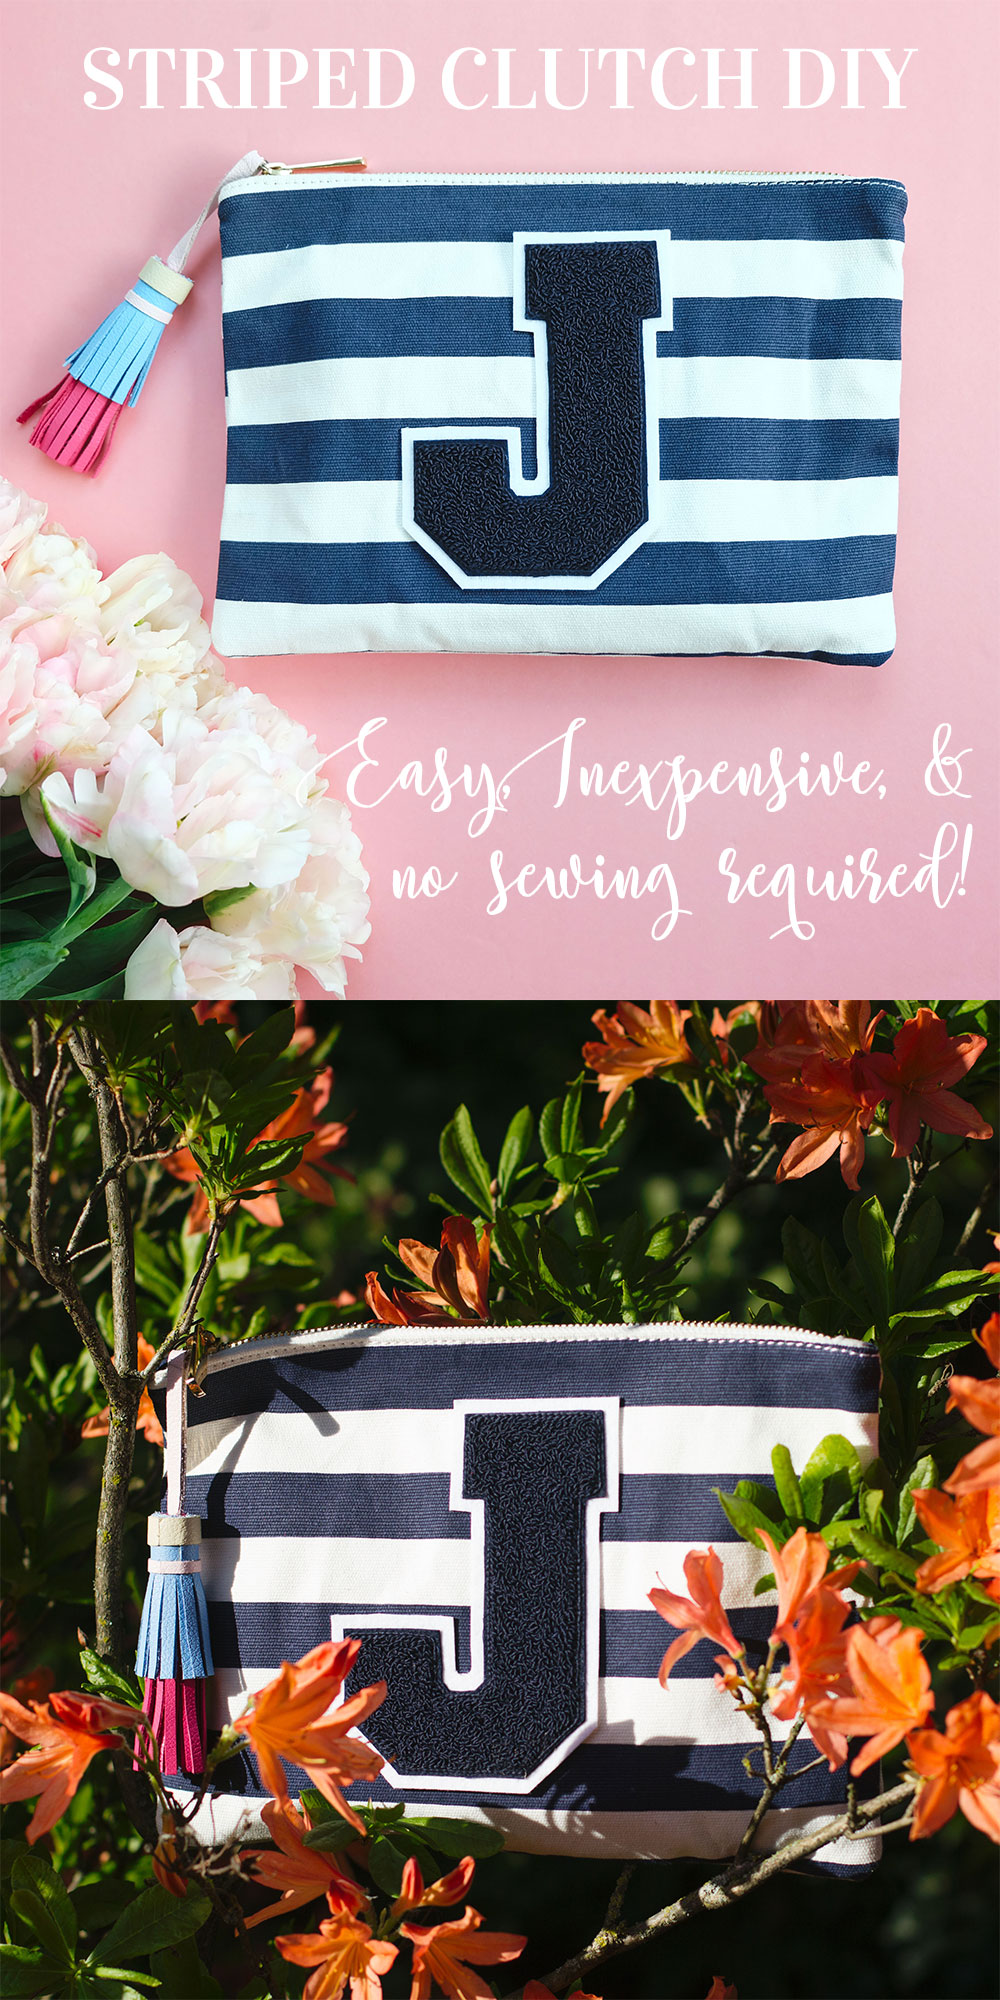 DIY Striped Clutch with Letter Monogram, DIY Under $30, Do It Yourself Fashion